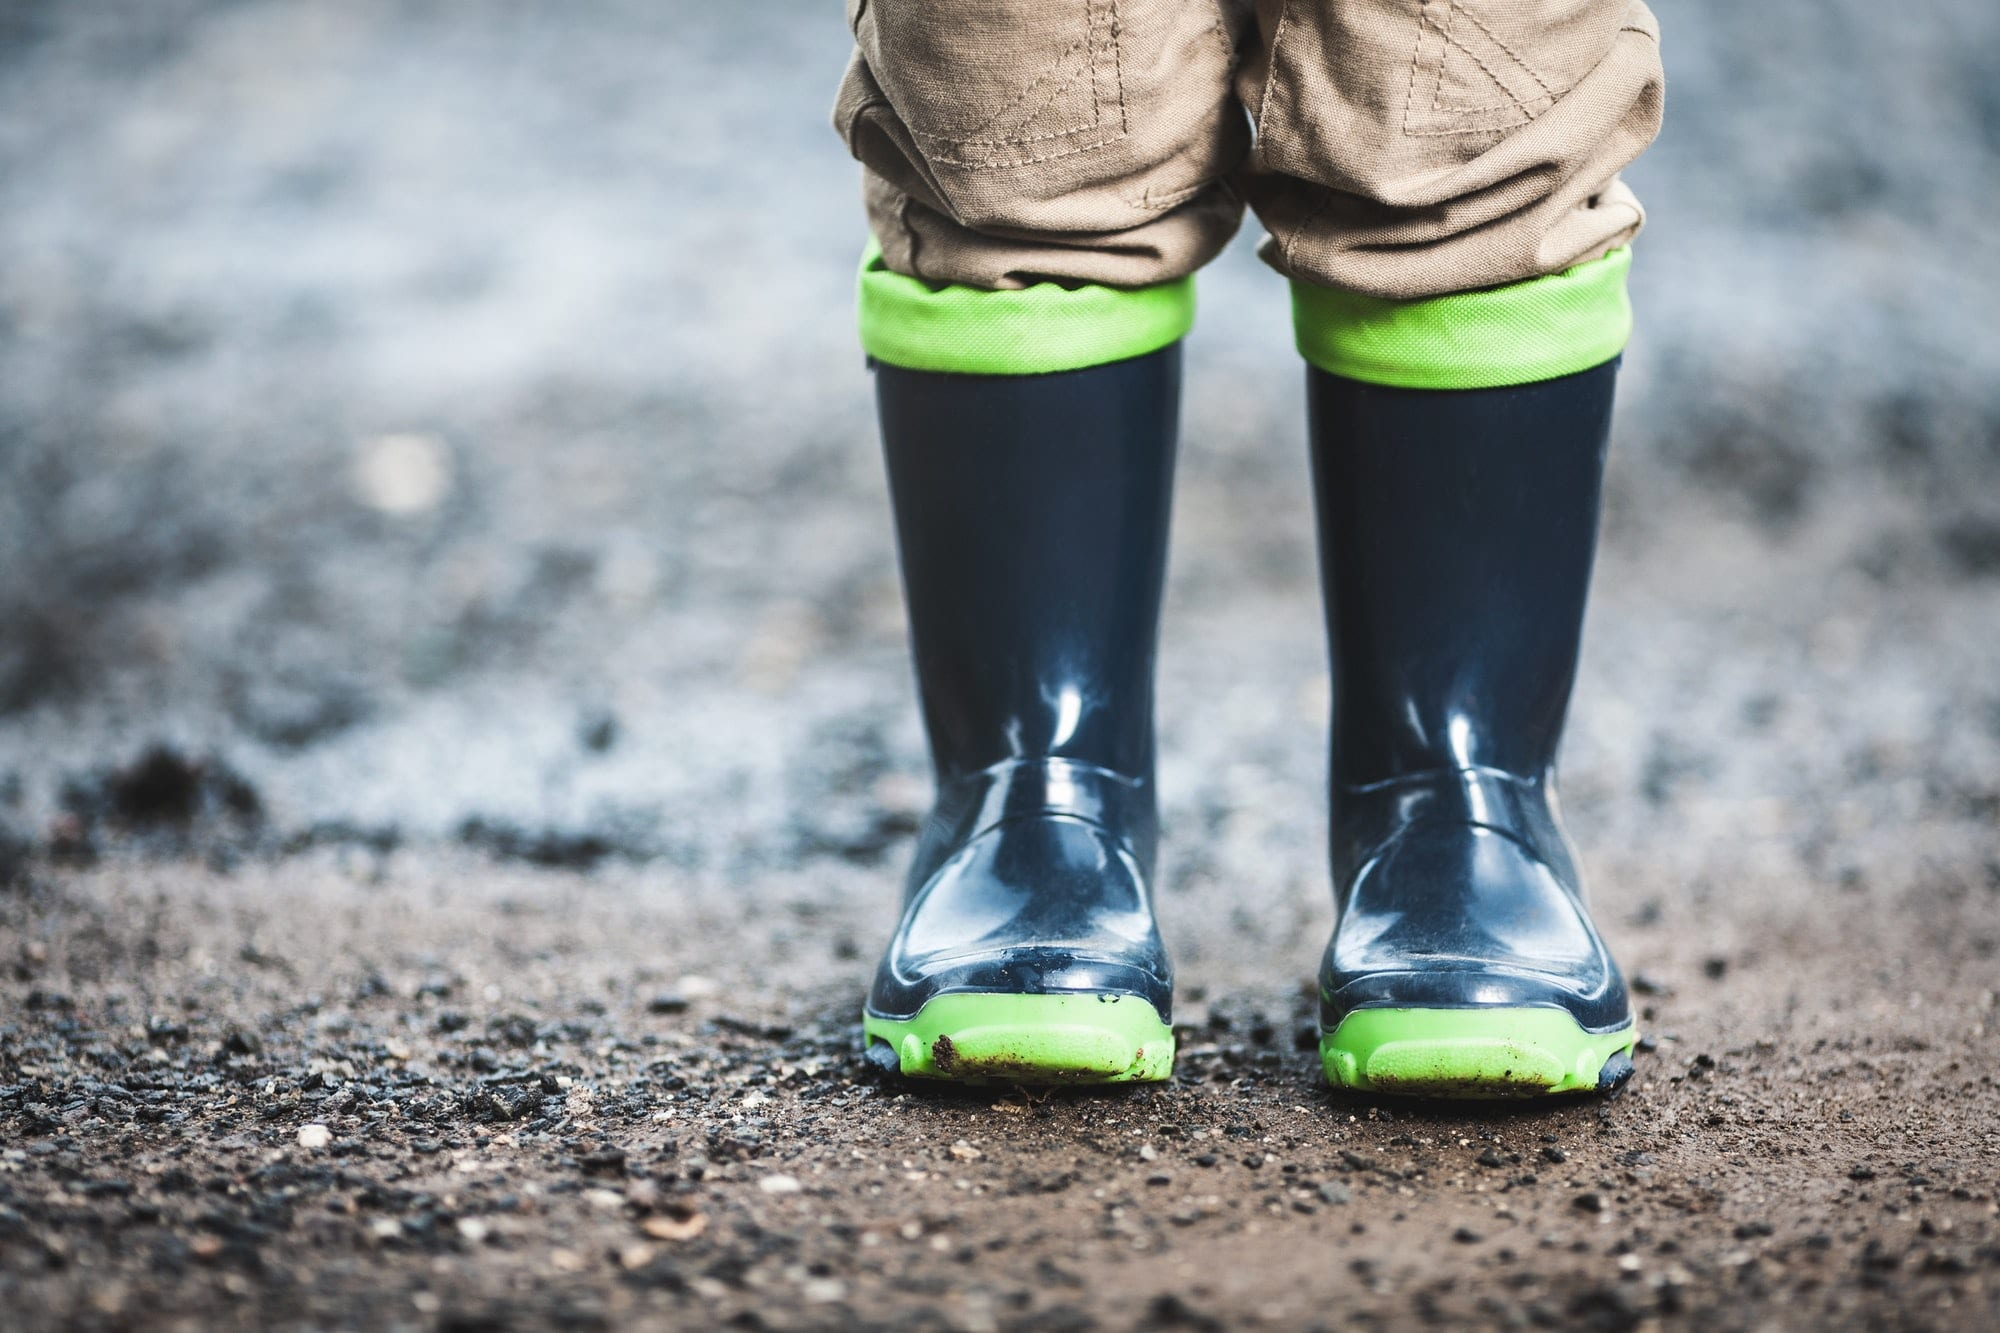 Toddler wearing rubber boots in rainy weather